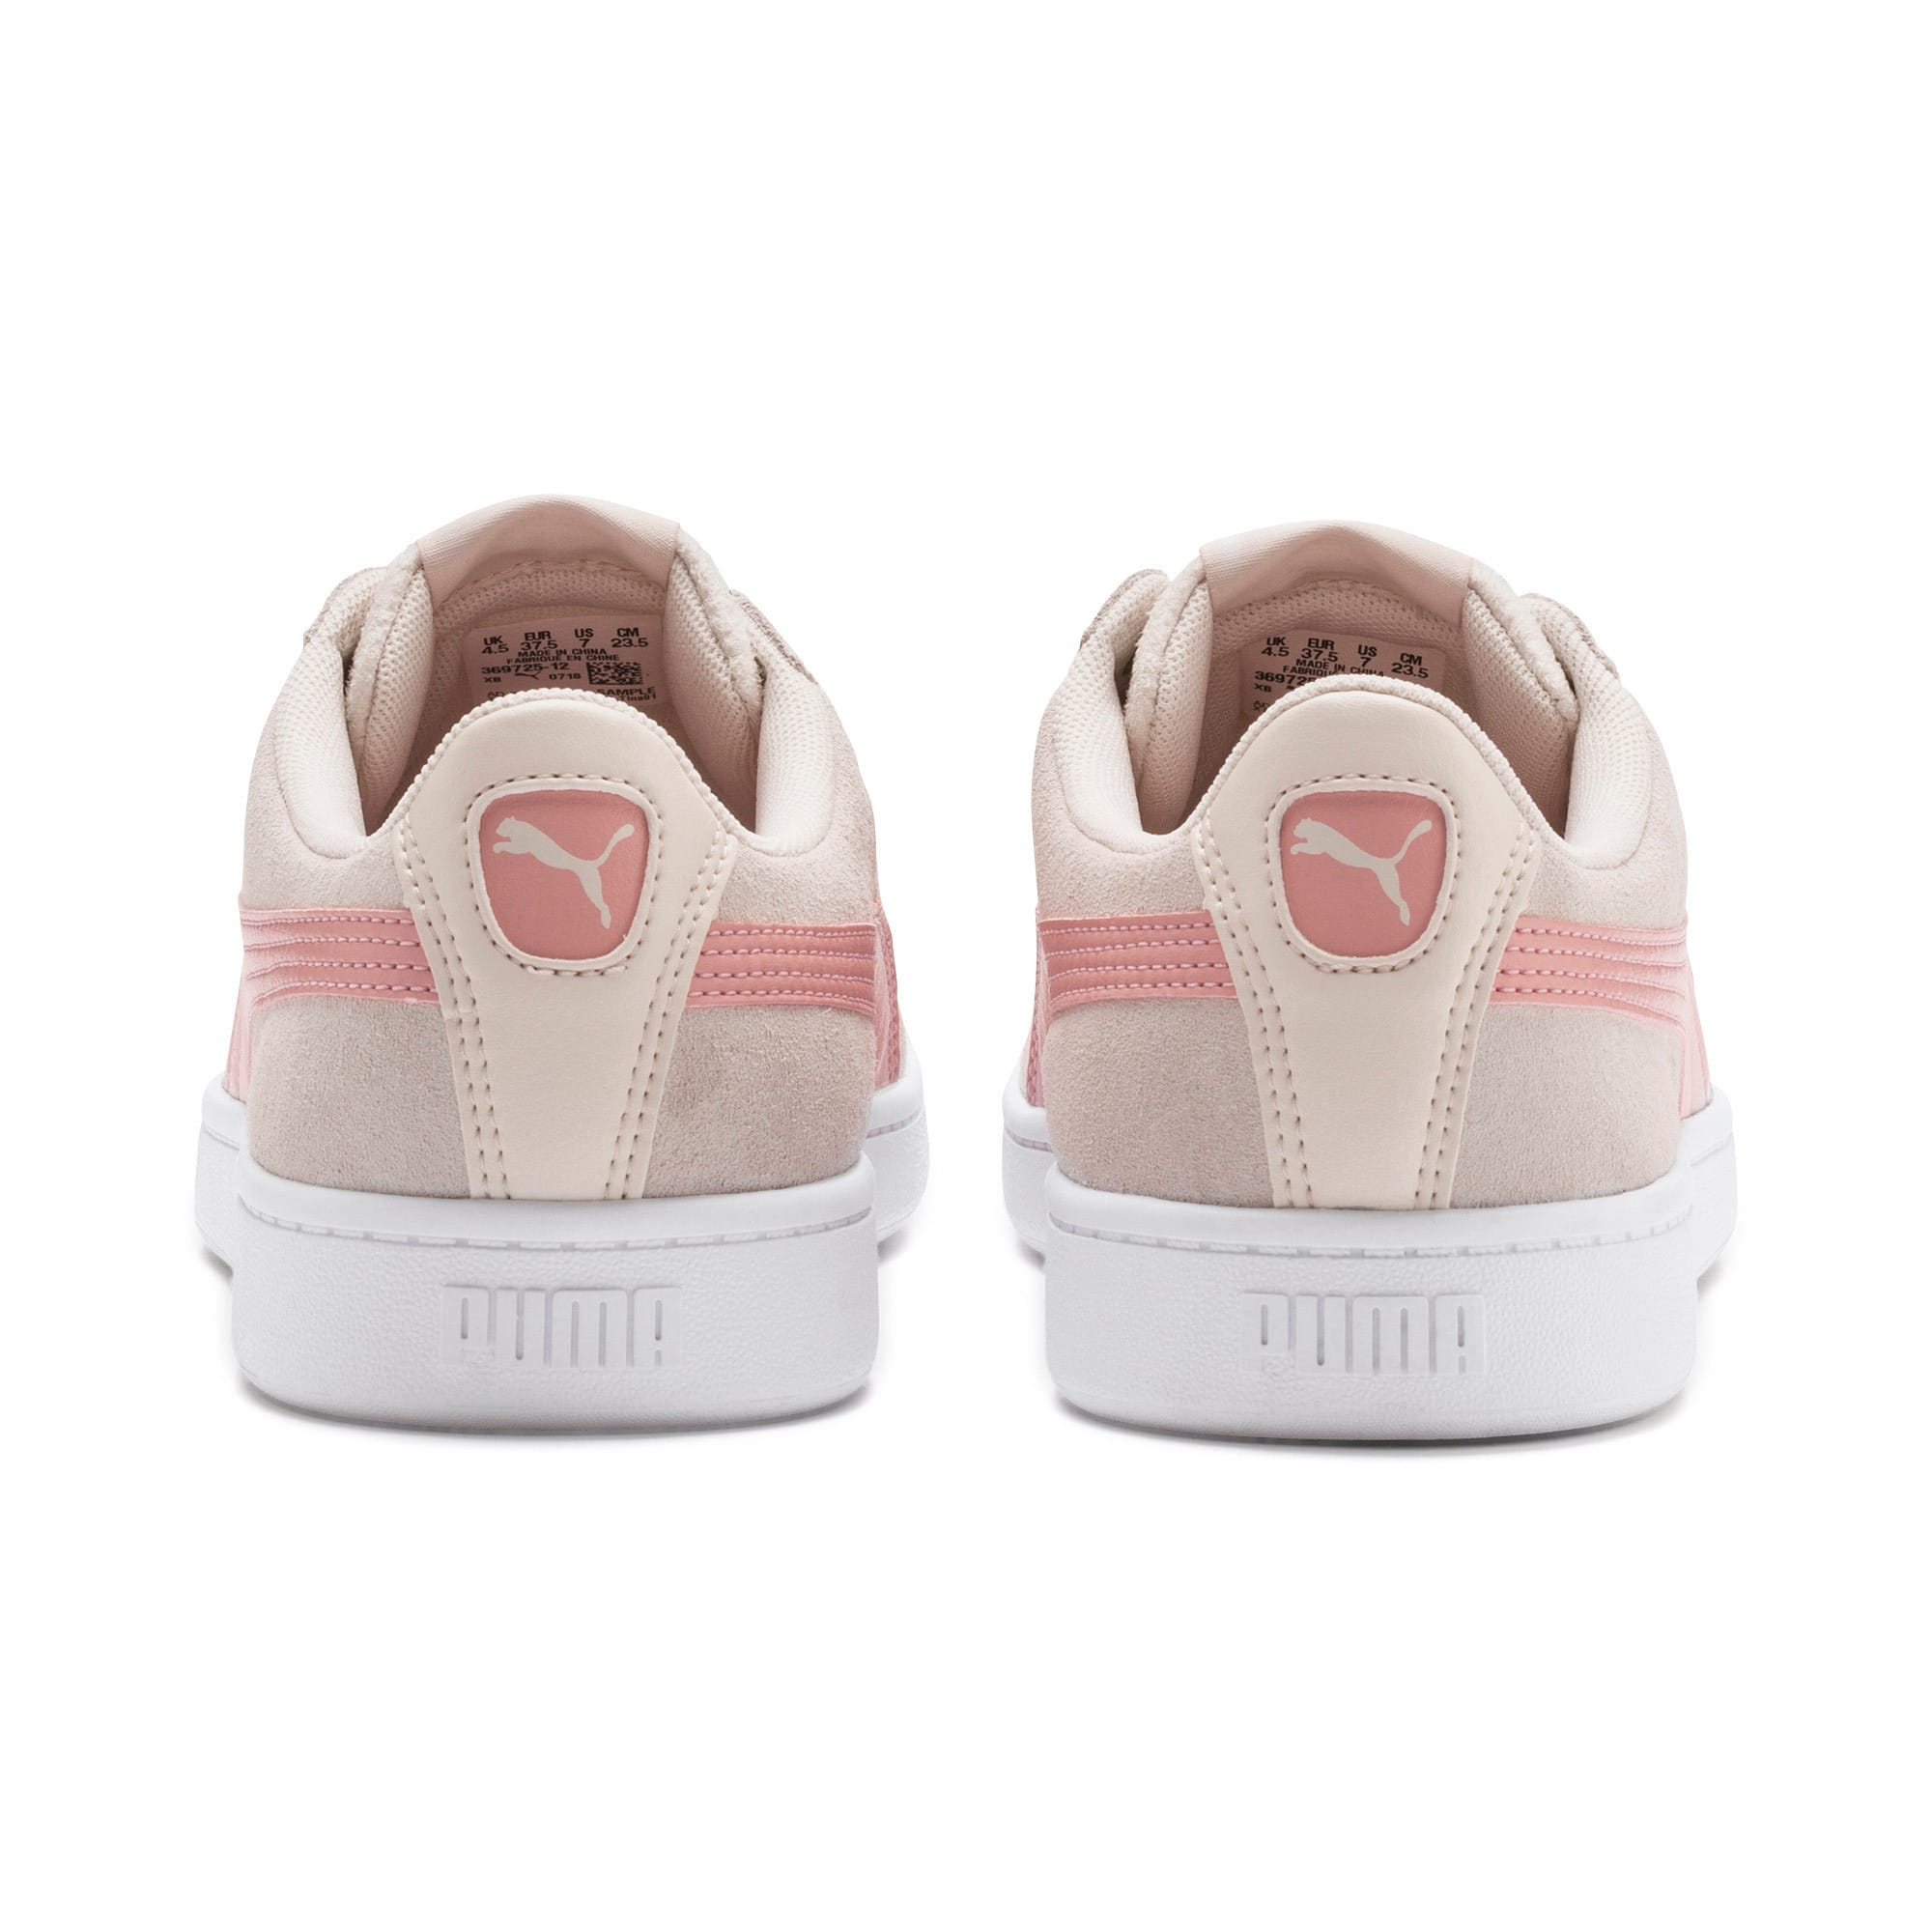 Thumbnail 4 of PUMA Vikky v2 Women's Sneakers, P Parchment-B Rose-White, medium